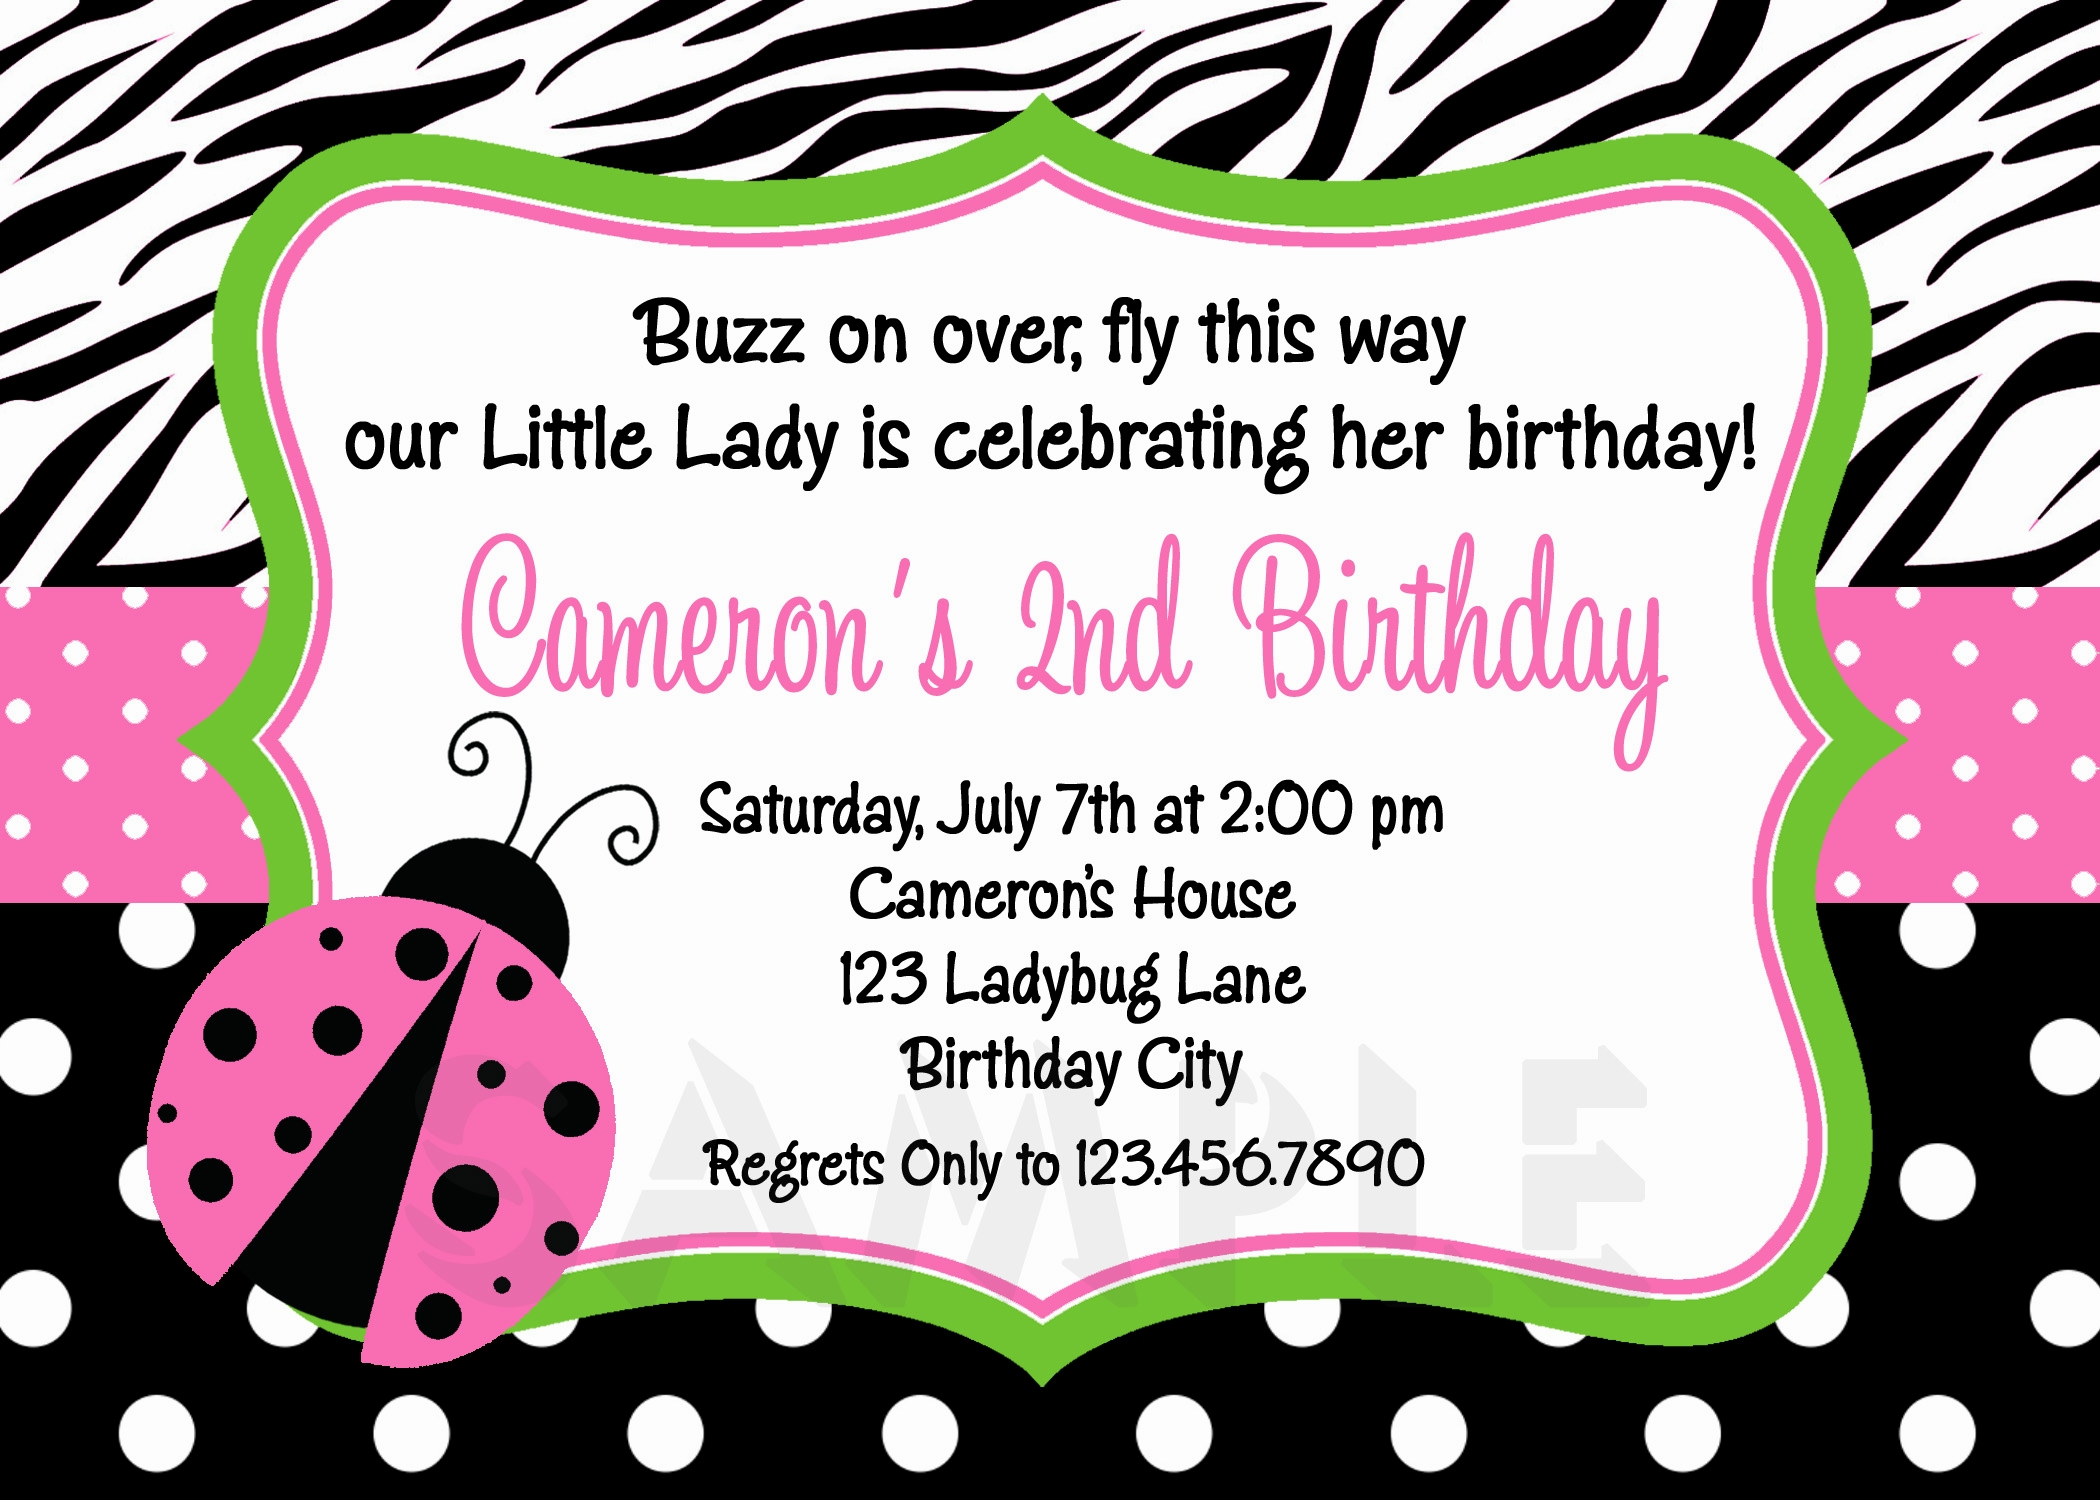 free printable birthday invitations with photo insert ; free-printable-birthday-invitations-with-photo-insert-are-awesome-template-for-awesome-invitation-layout